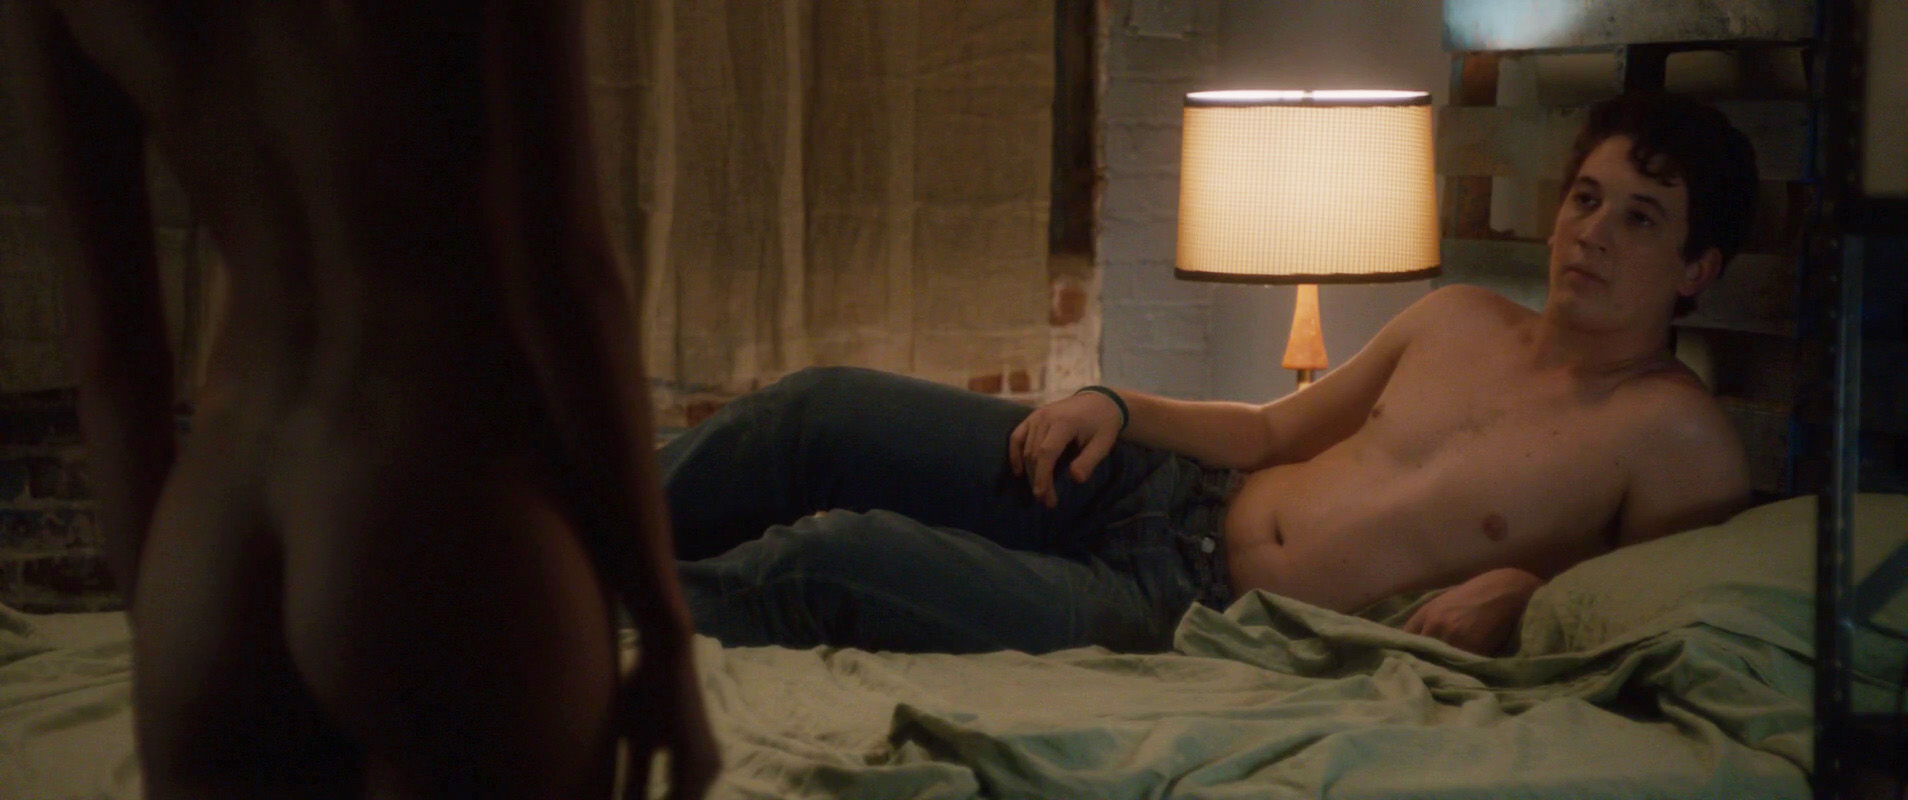 Analeigh Tipton Sex watch online - analeigh tipton – two night stand (2014) hd 1080p